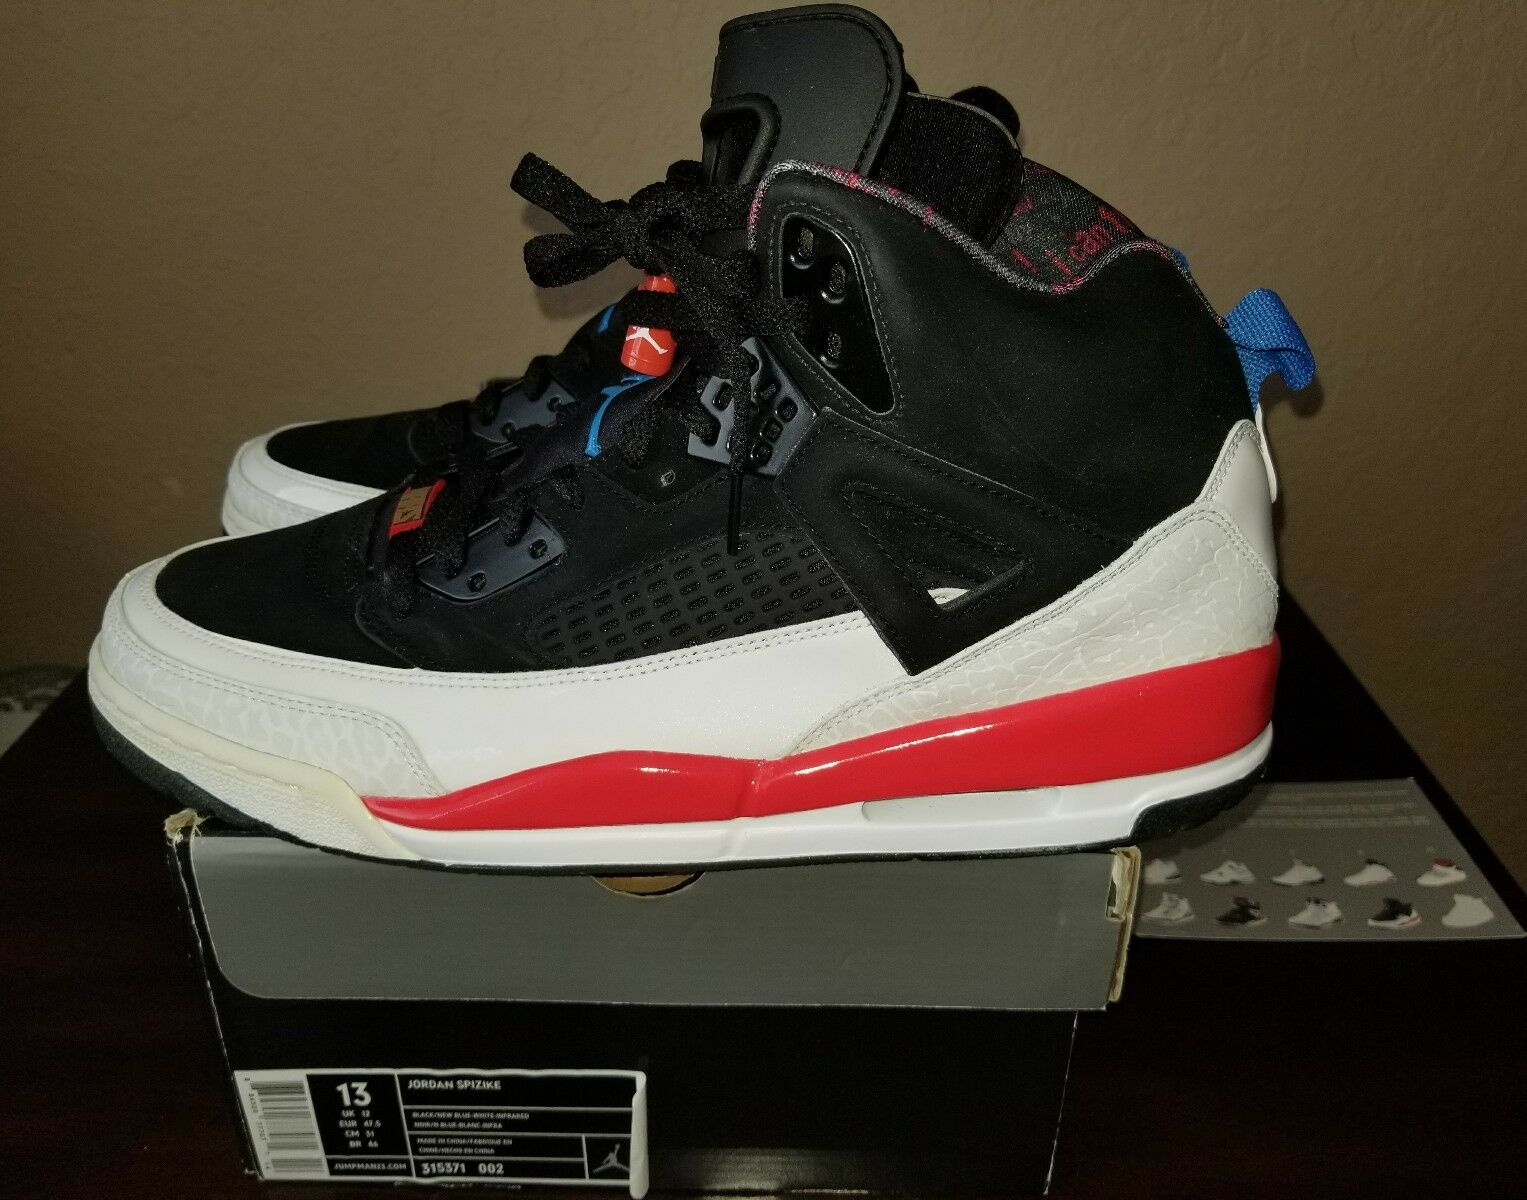 DS NEW 2018 Nike Air Jordan SPIZIKE BLACK WHITE INFRARED CEMENT 315371-002 13 Cheap and beautiful fashion